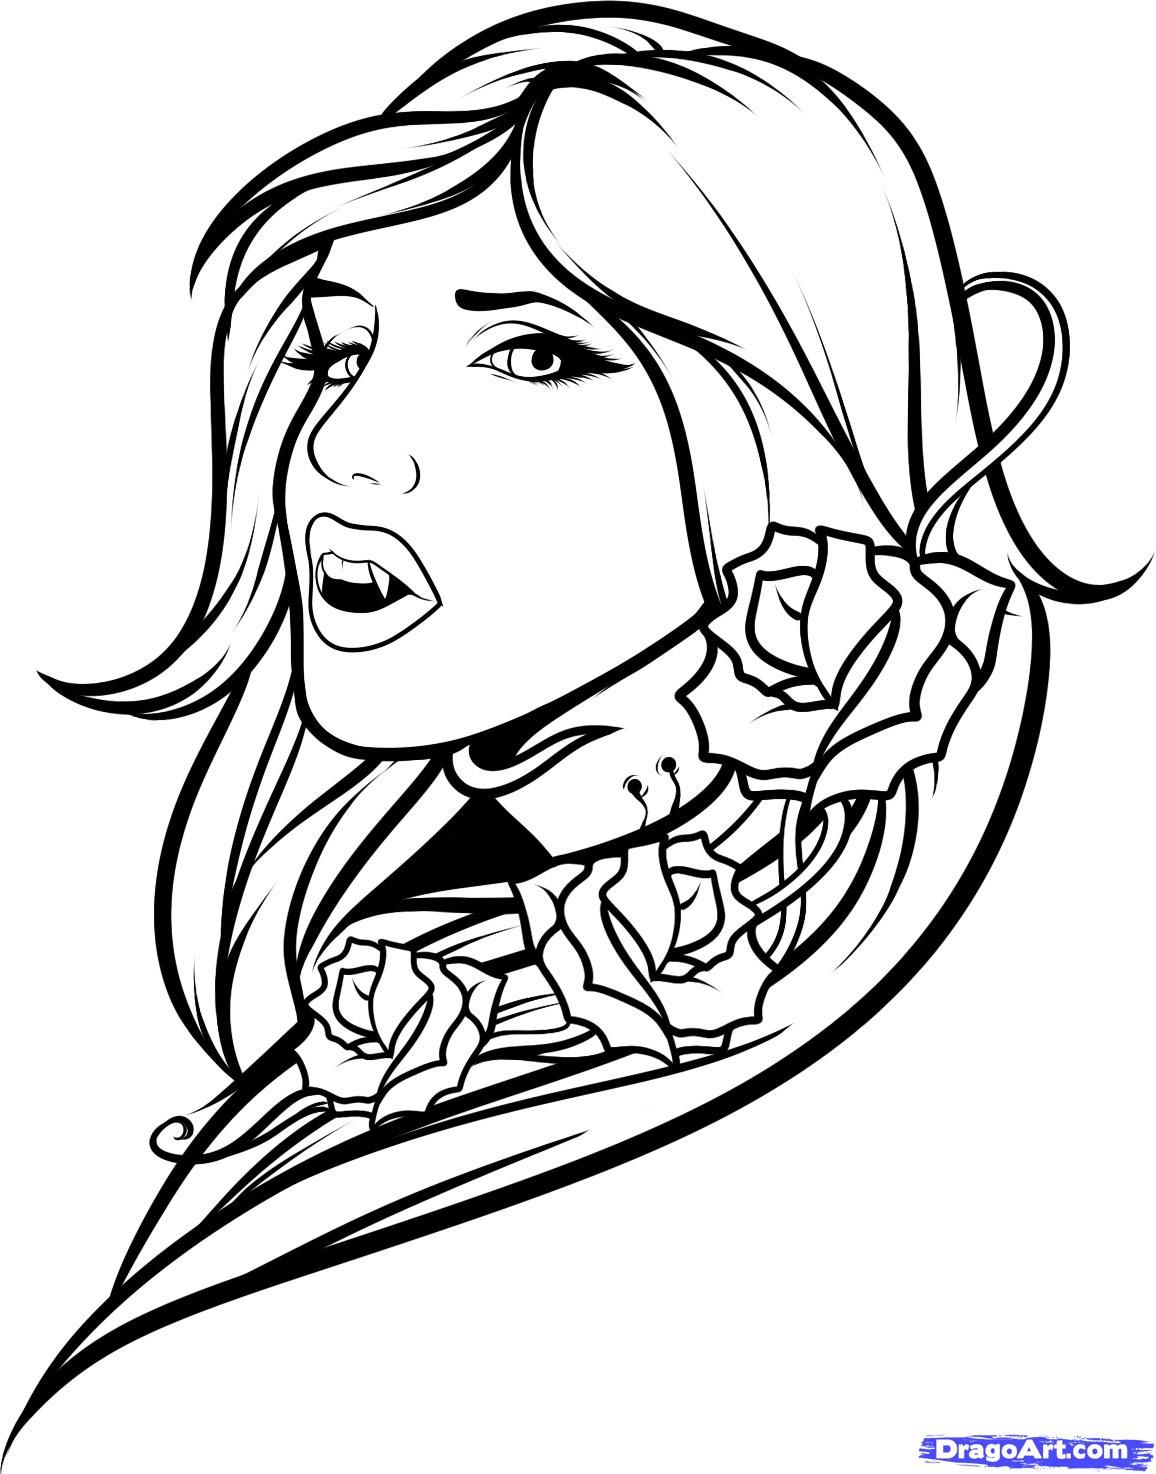 Vampire Girl Vm Colouring Pages Tattoo Coloring Book Drawings